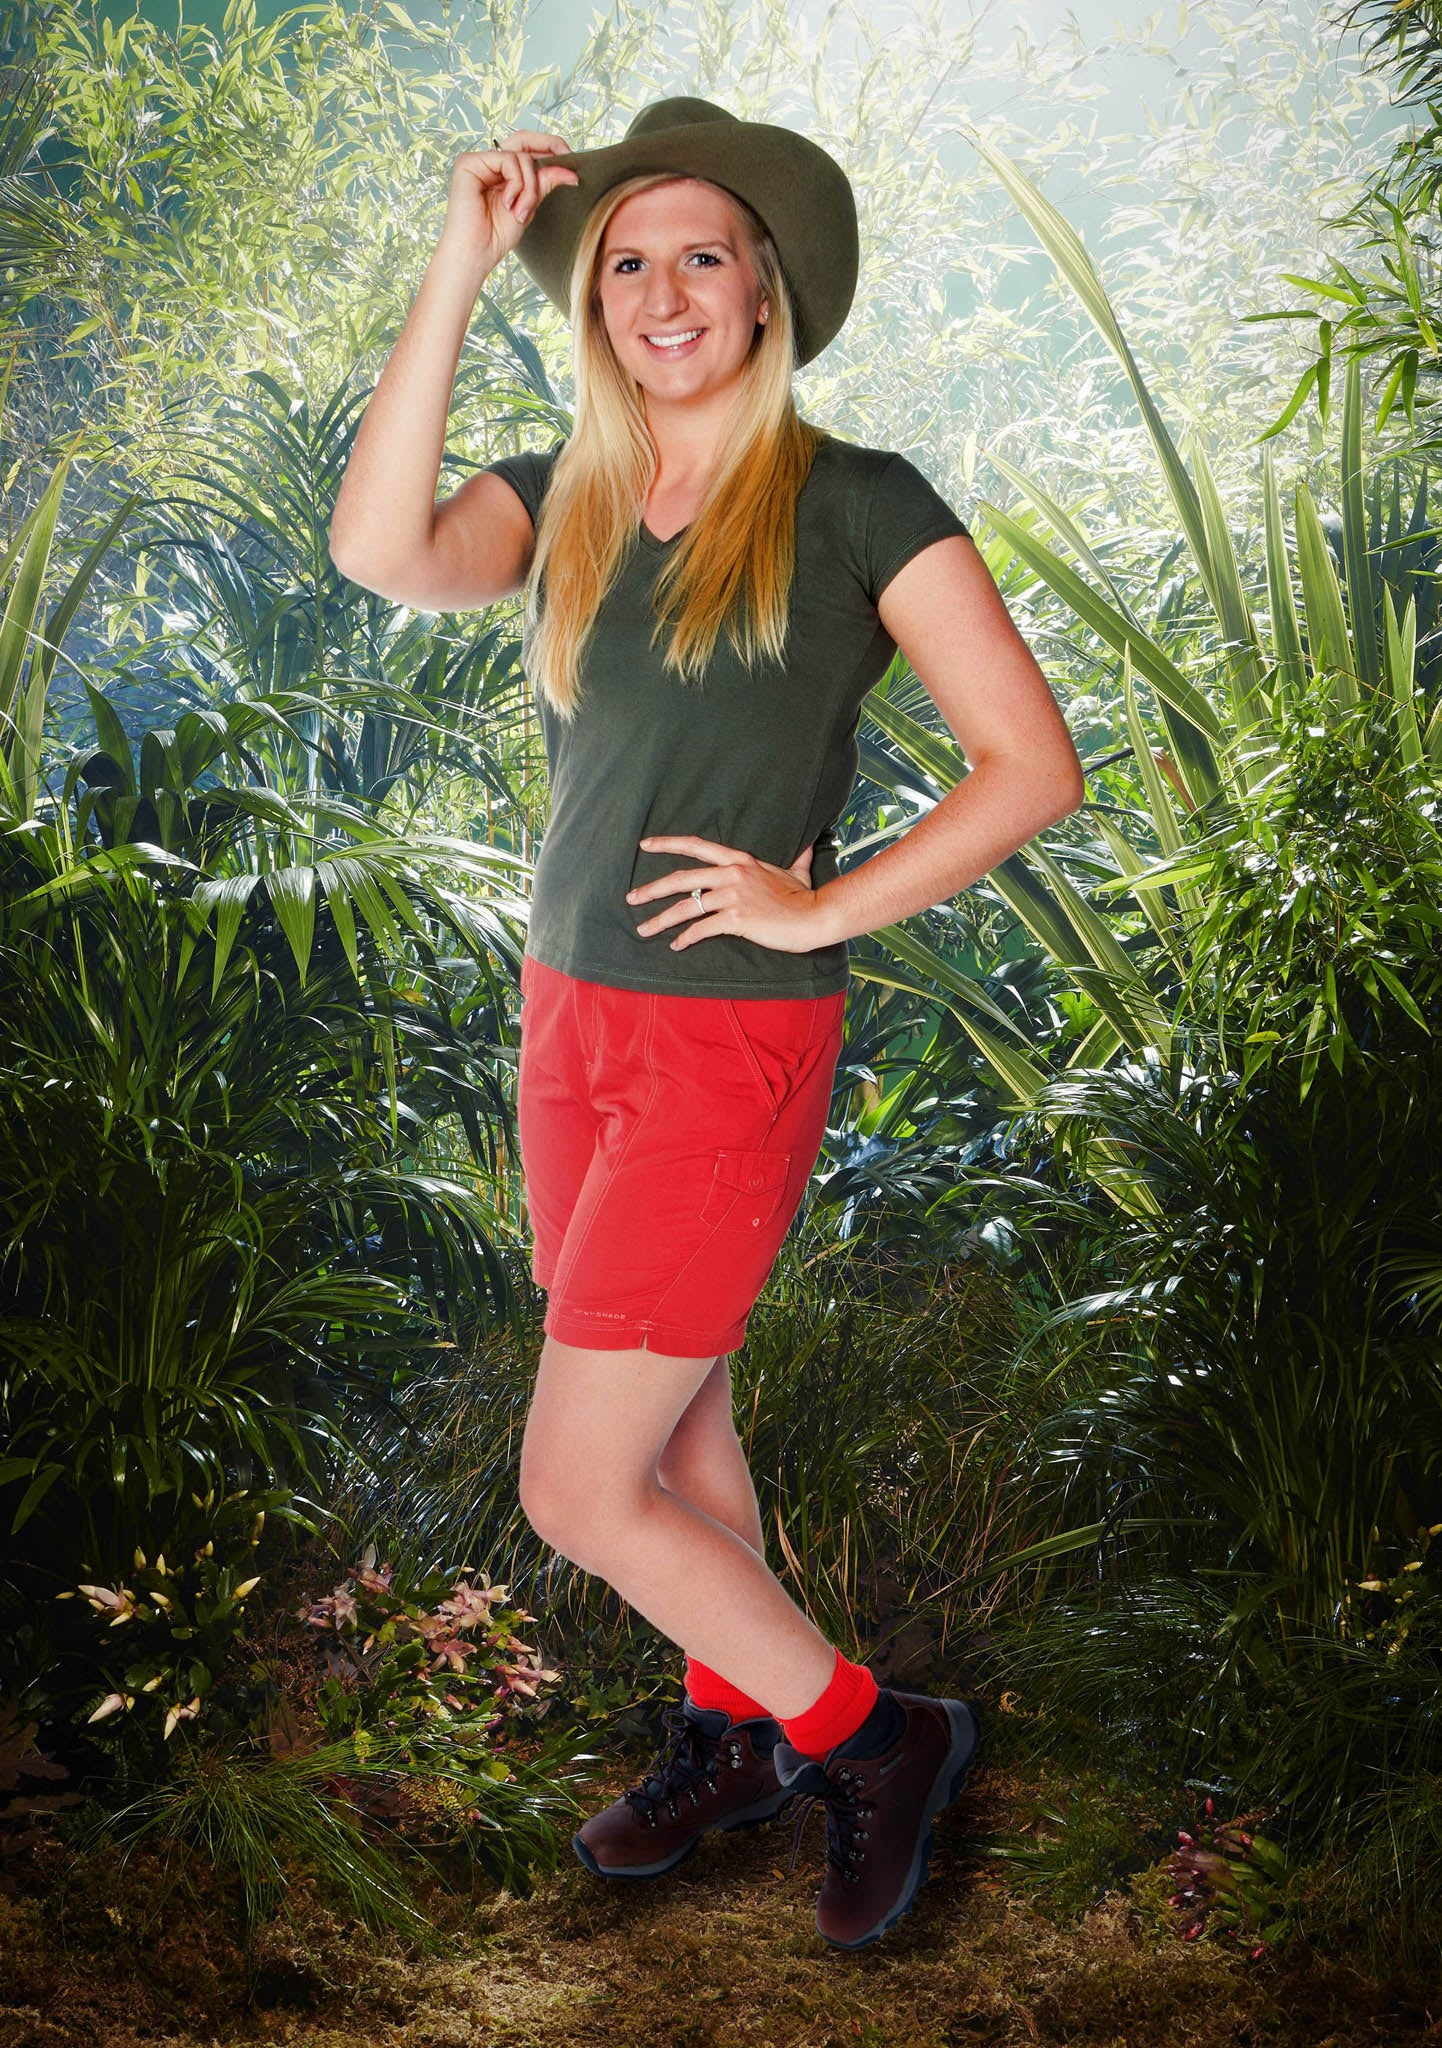 Im a celebrity new contestants on the voice